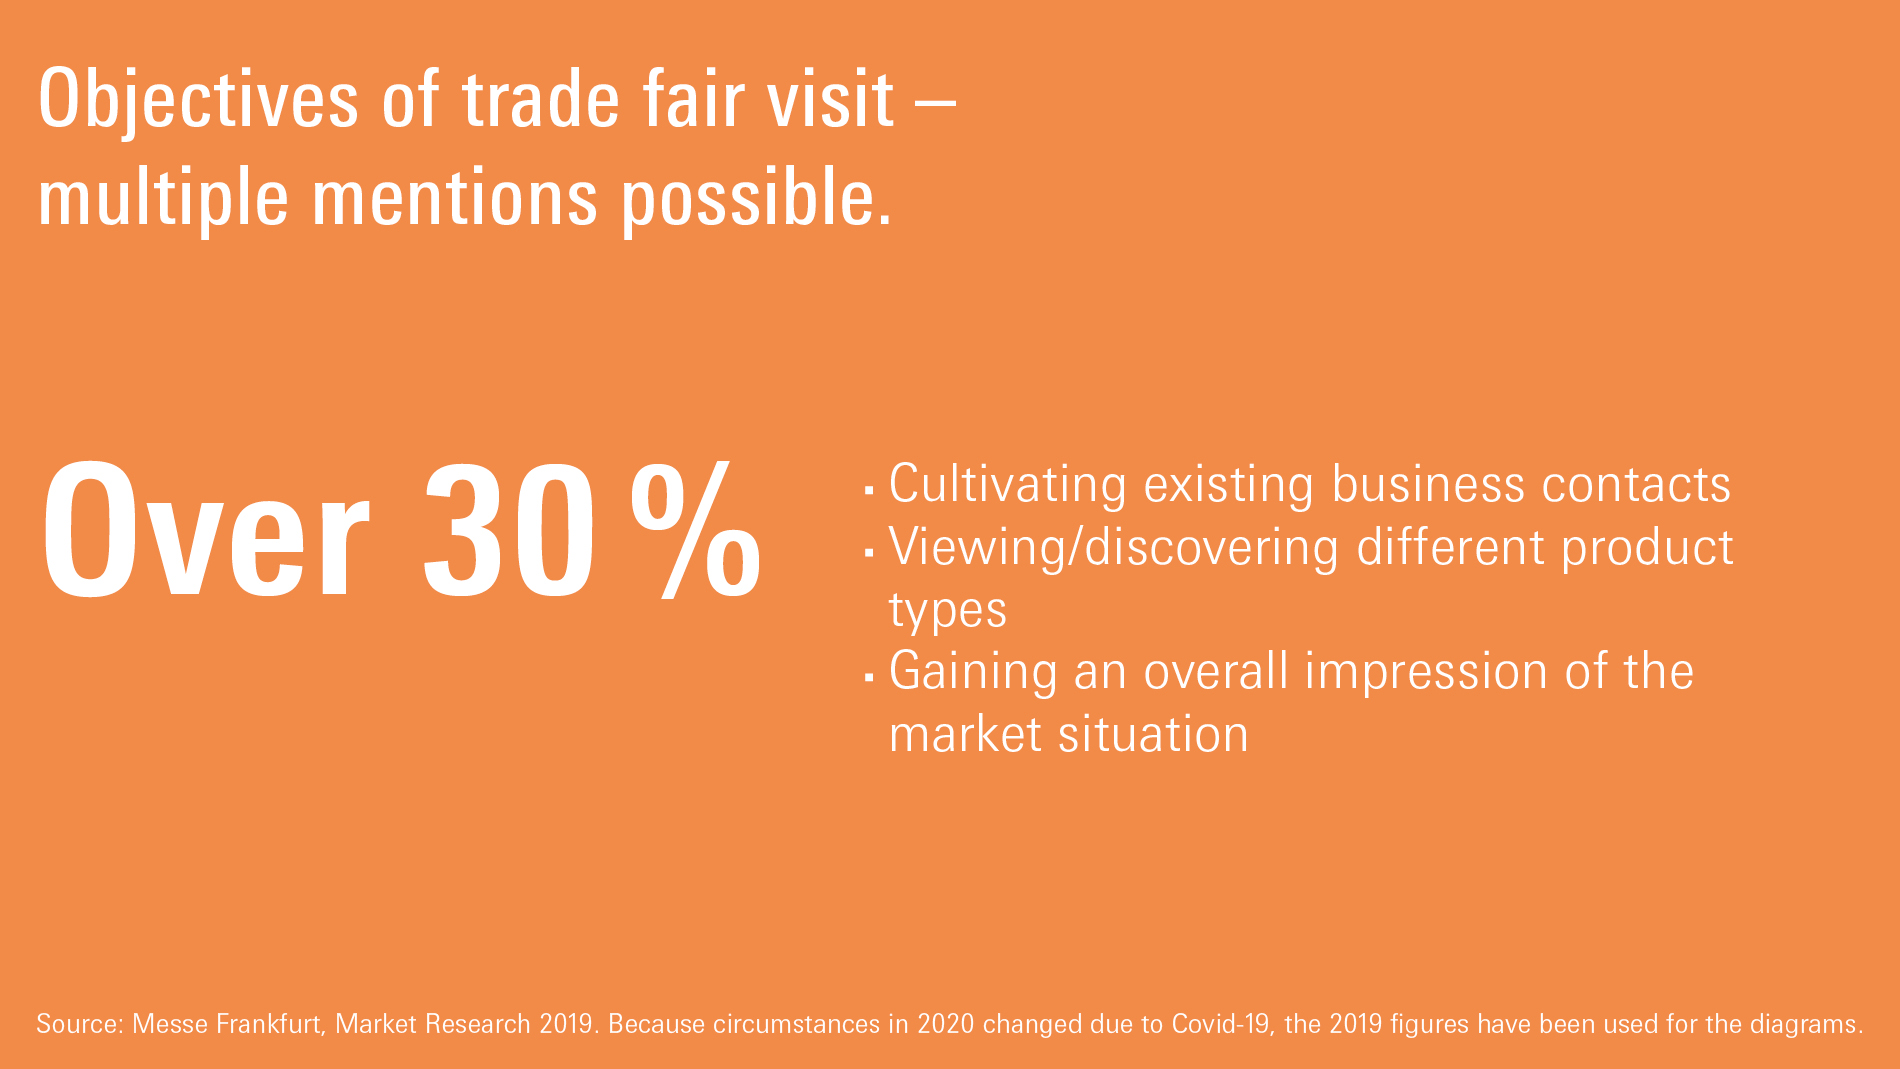 Ambiente - objectives of trade fair visit 2020